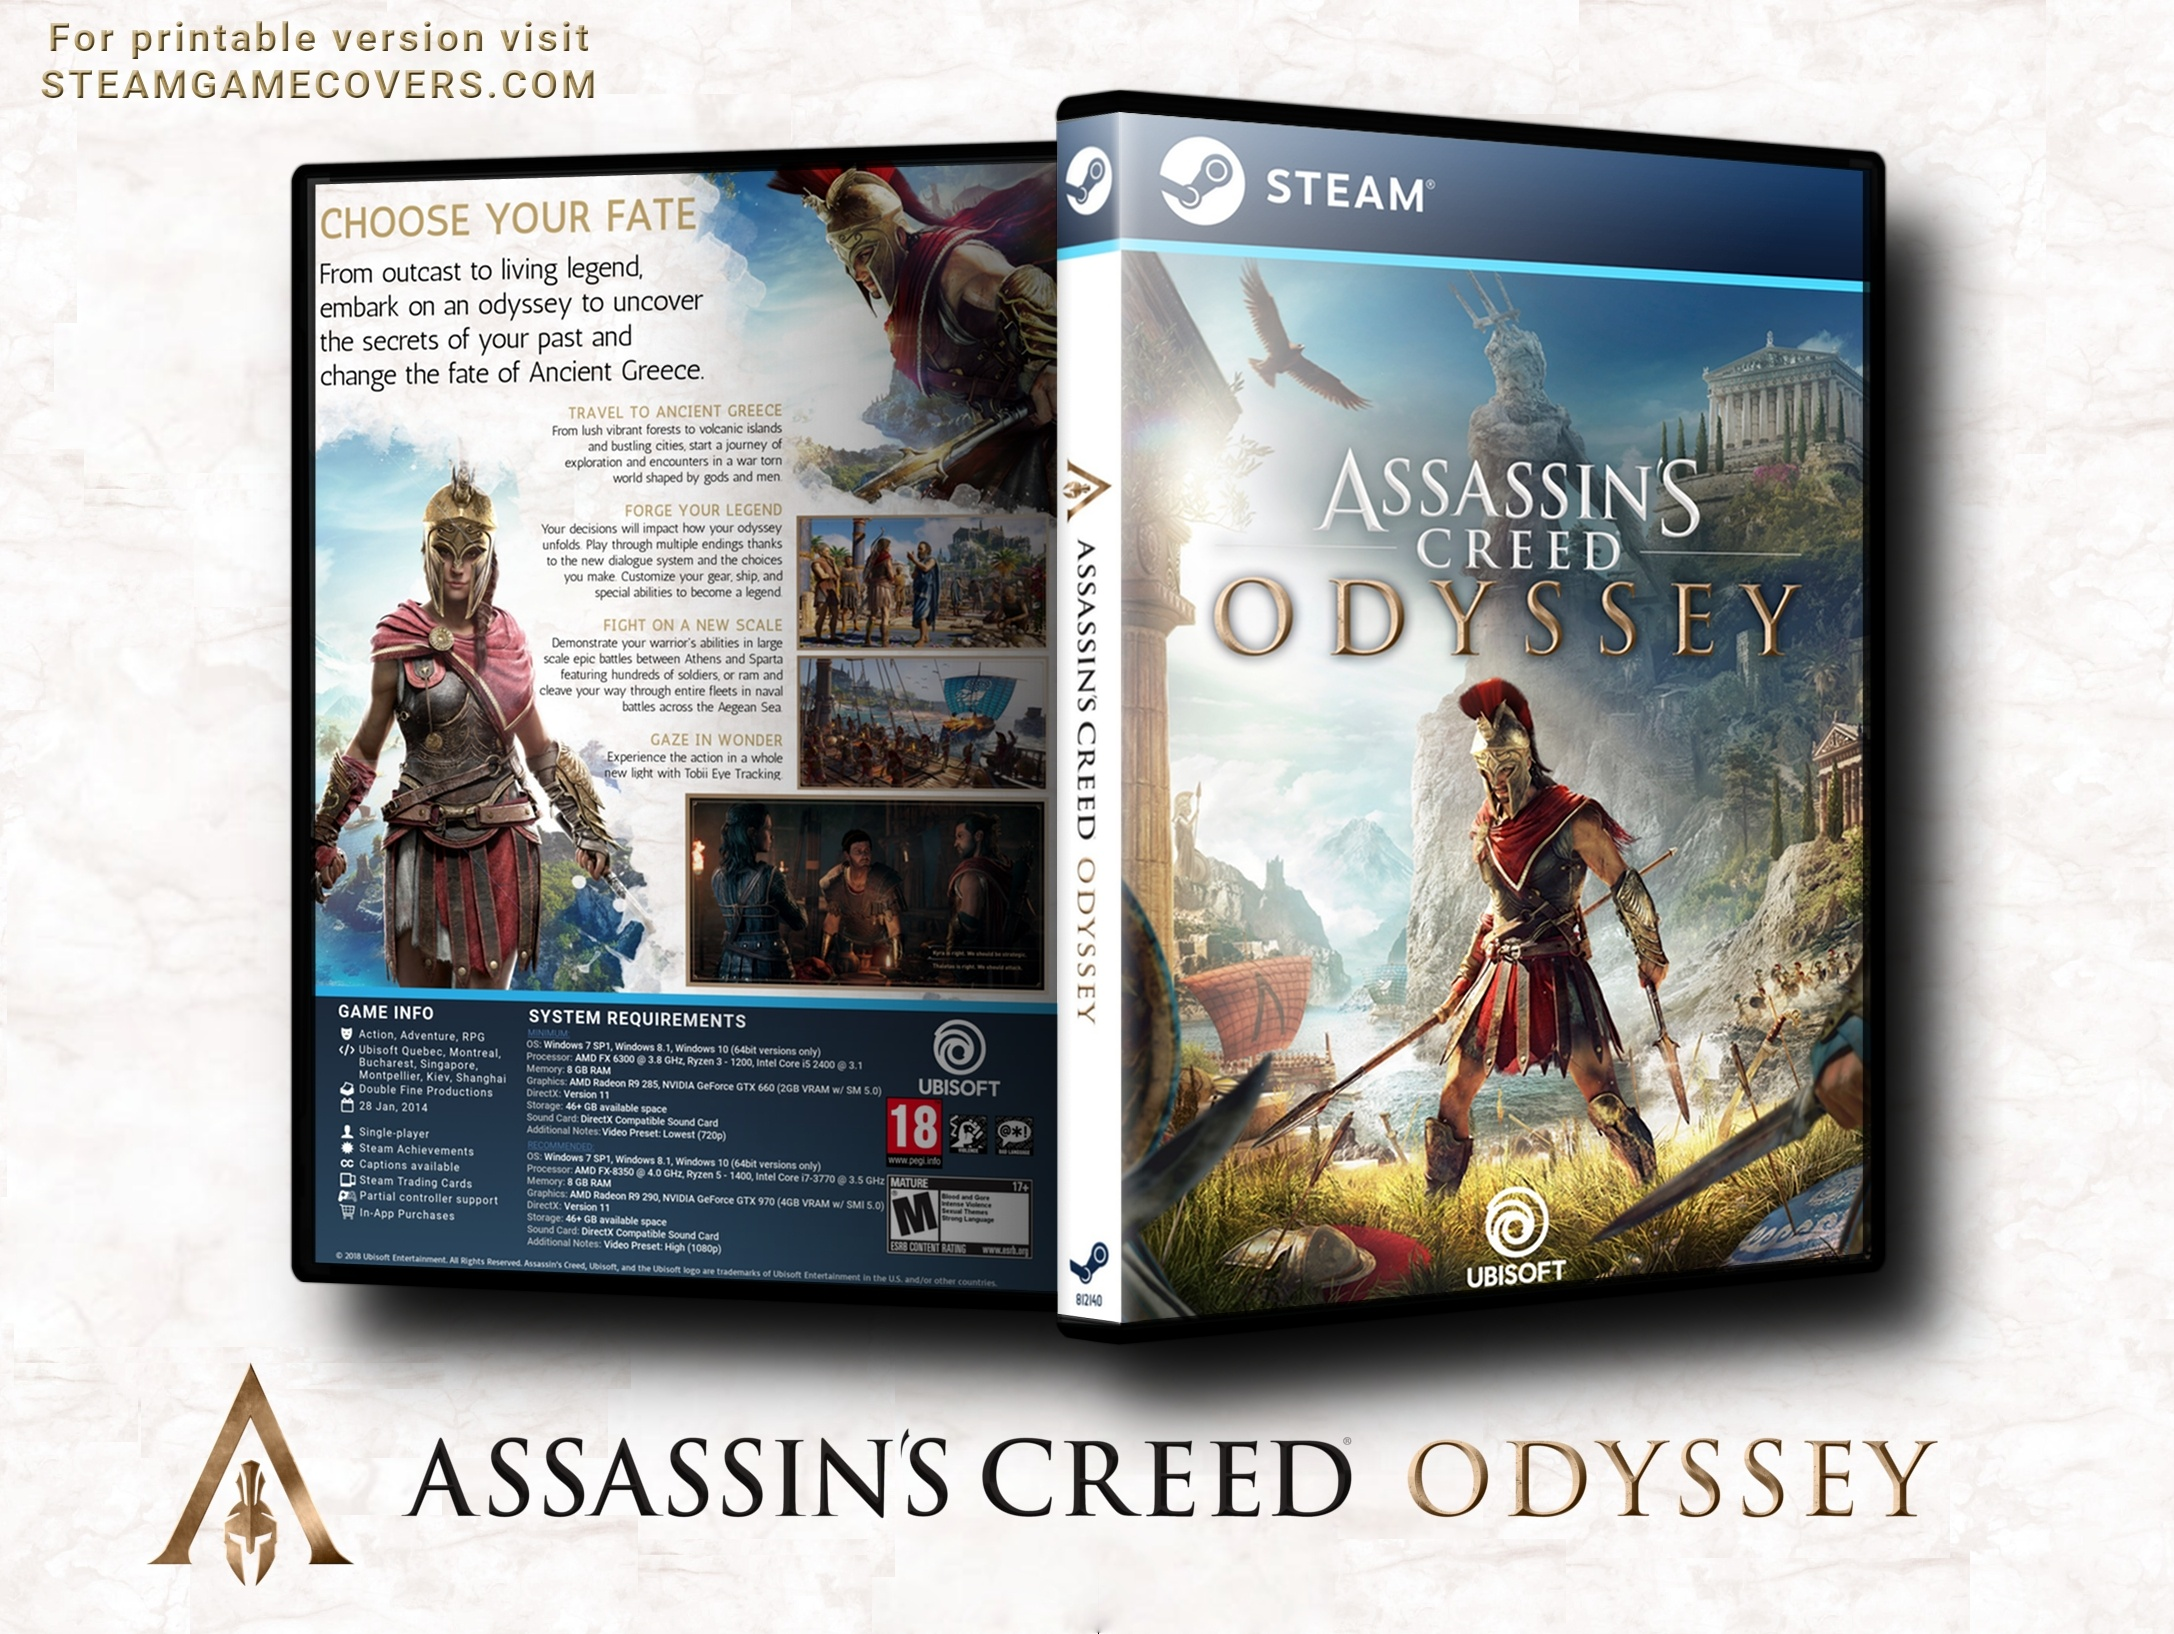 Assassin's Creed Odyssey box cover